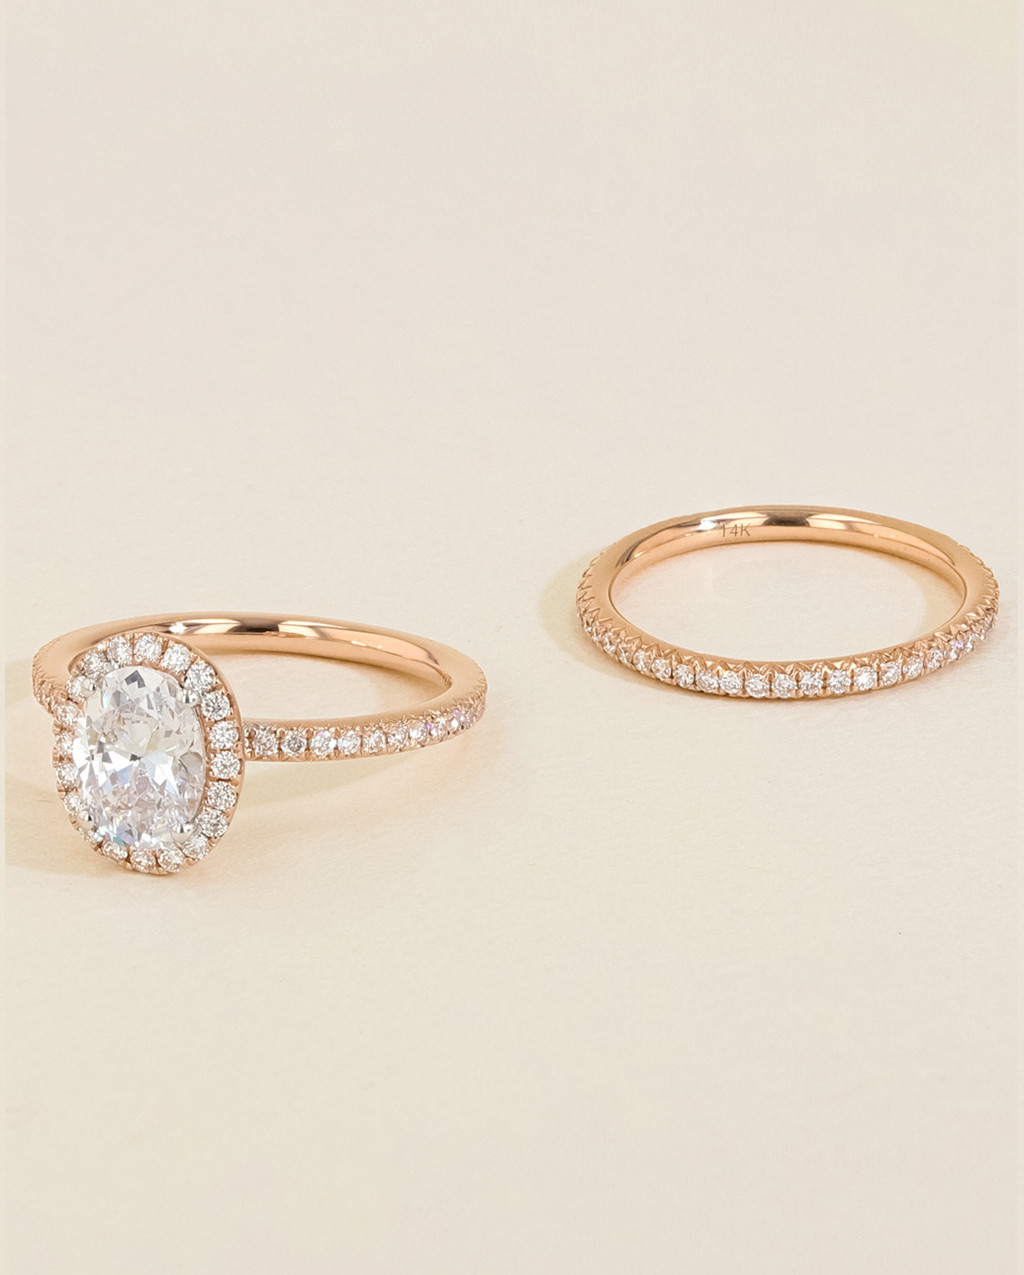 Diamond Pavé Halo Engagement Ring Set side by side